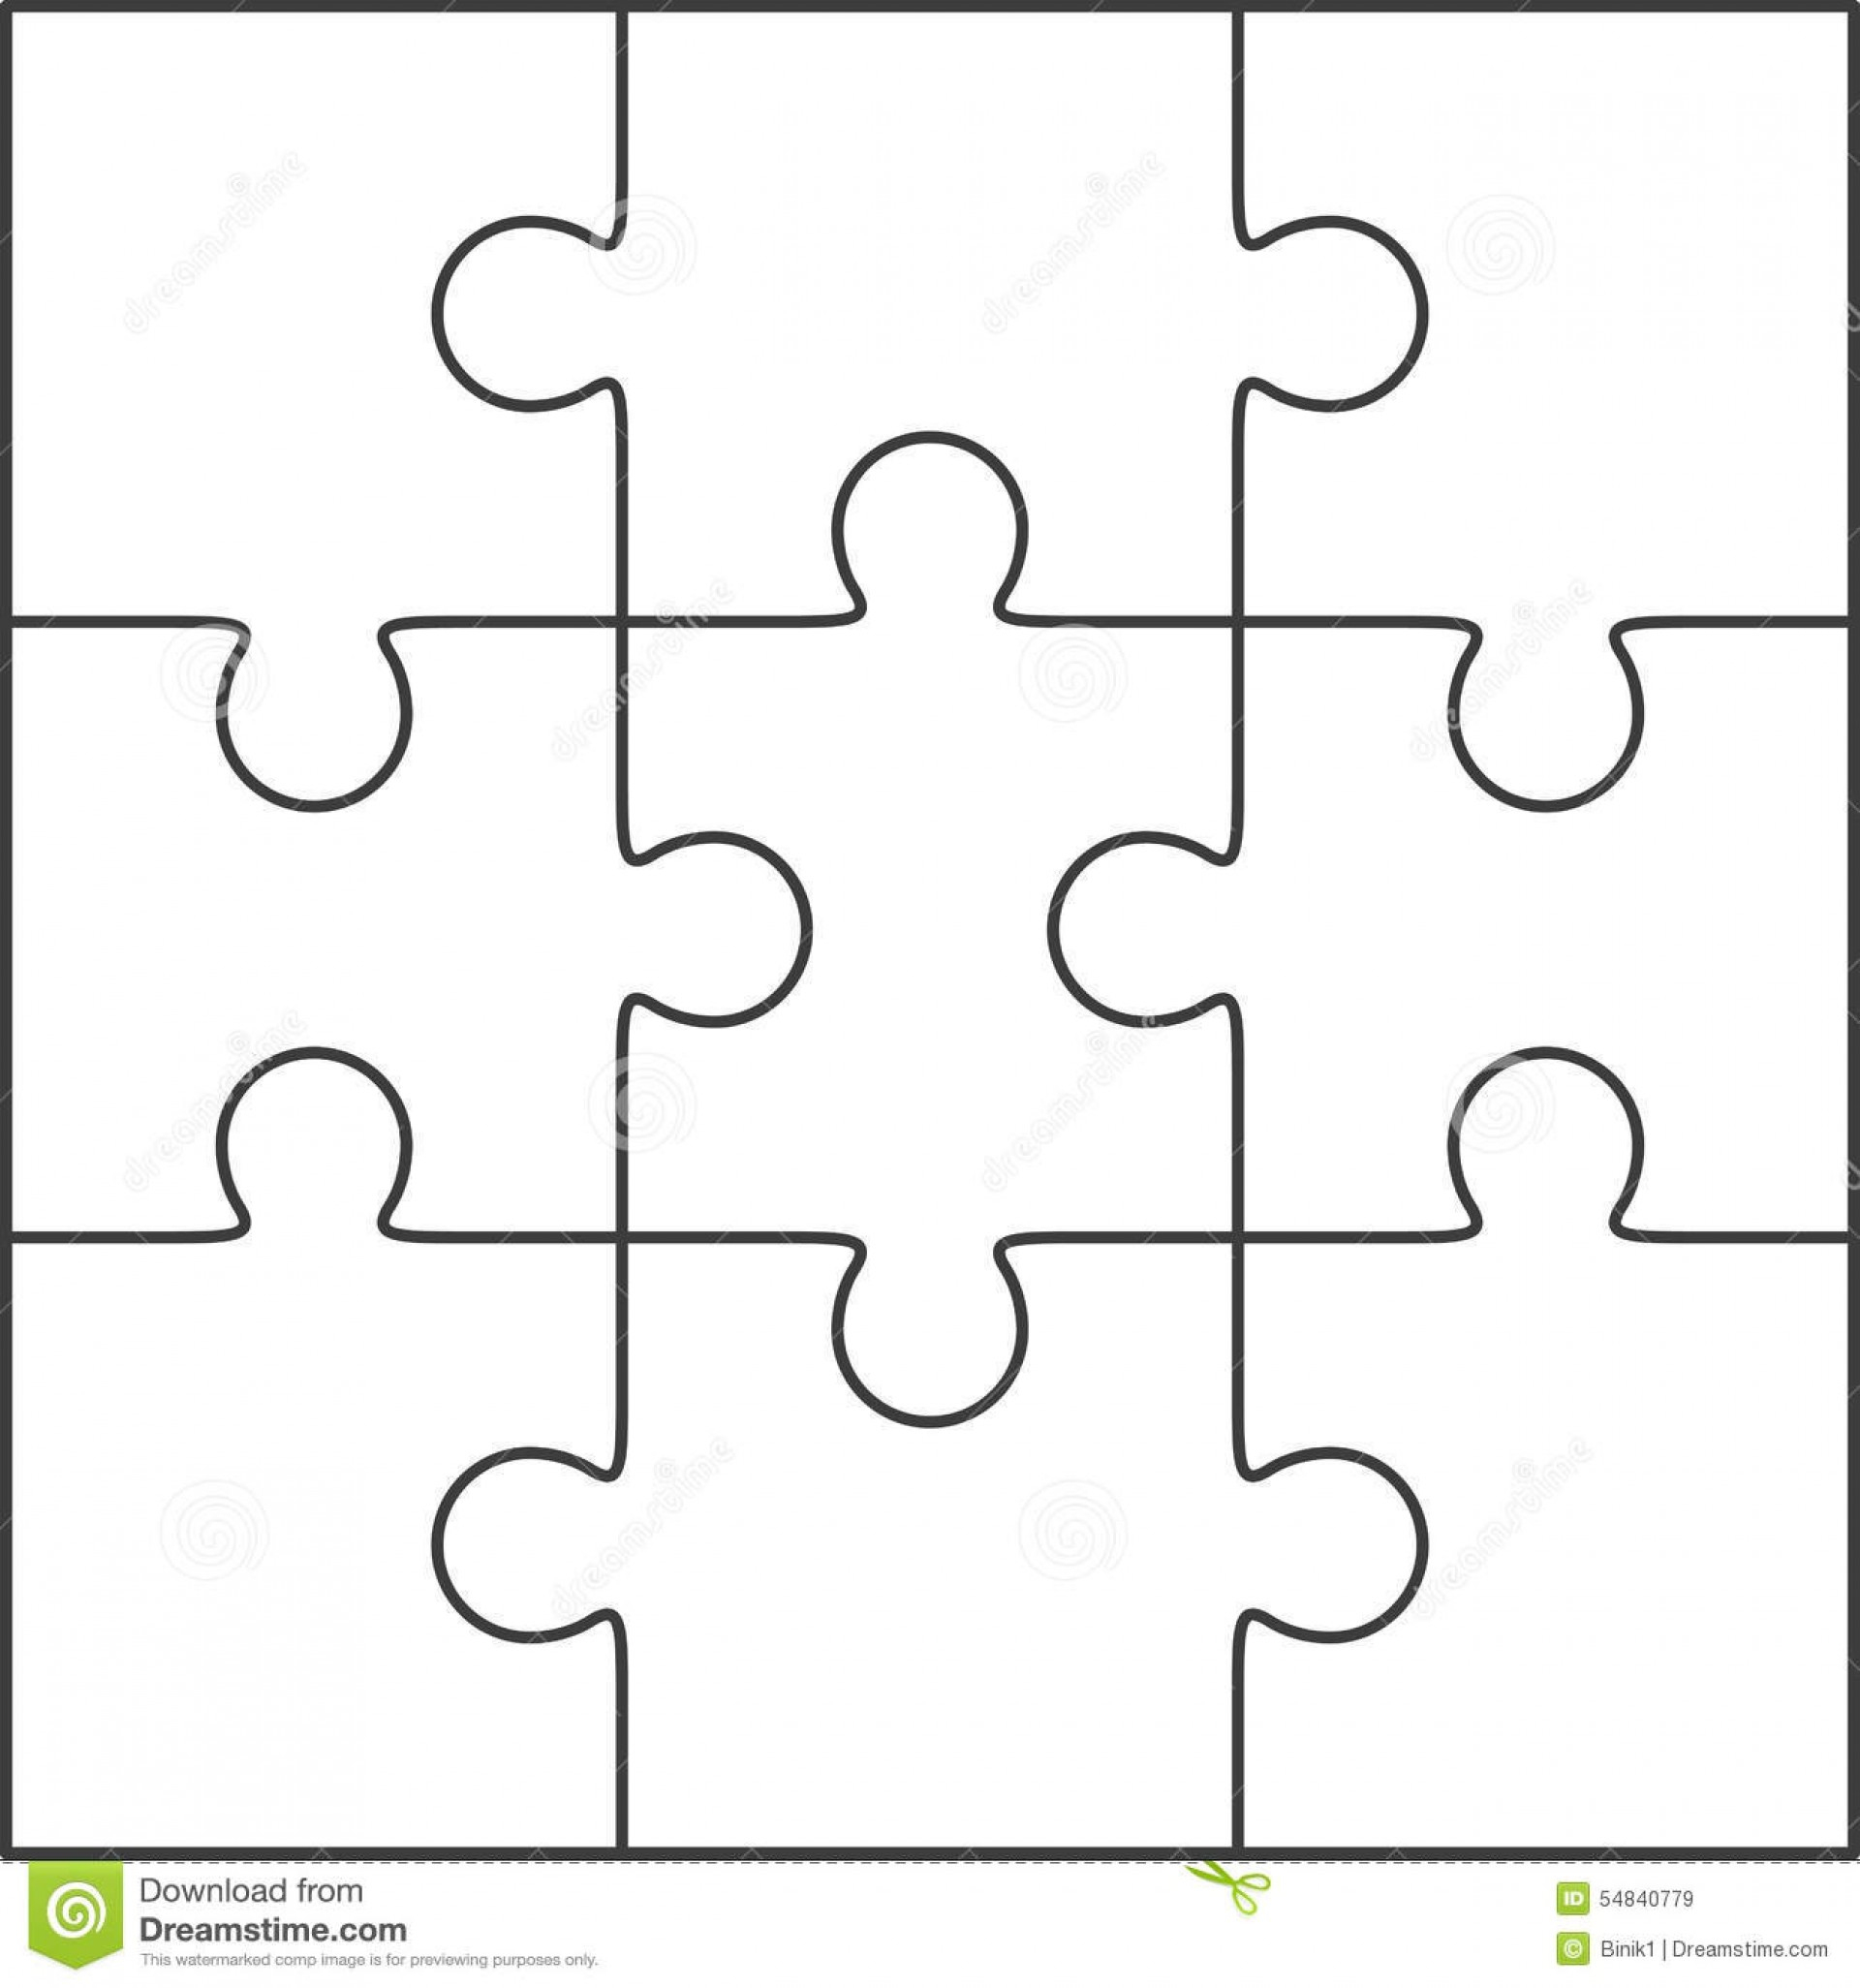 Best Jig Saw Puzzle Template Ideas Blank Jigsaw Word Free Printable - Printable Blank Jigsaw Puzzle Outline